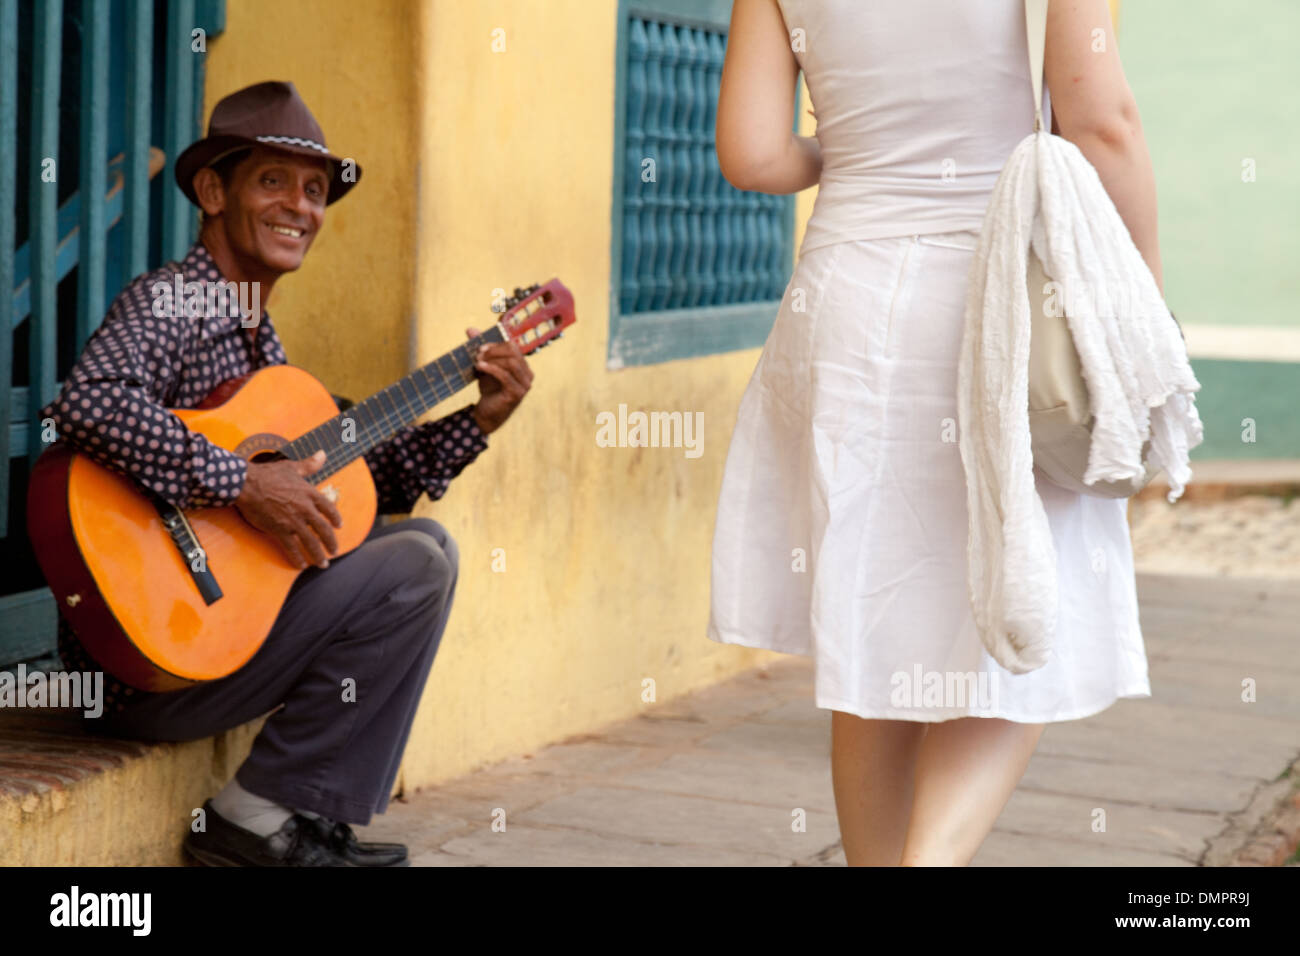 a-guitarist-playing-in-this-street-scene-as-a-woman-walks-past-cuban-DMPR9J.jpg